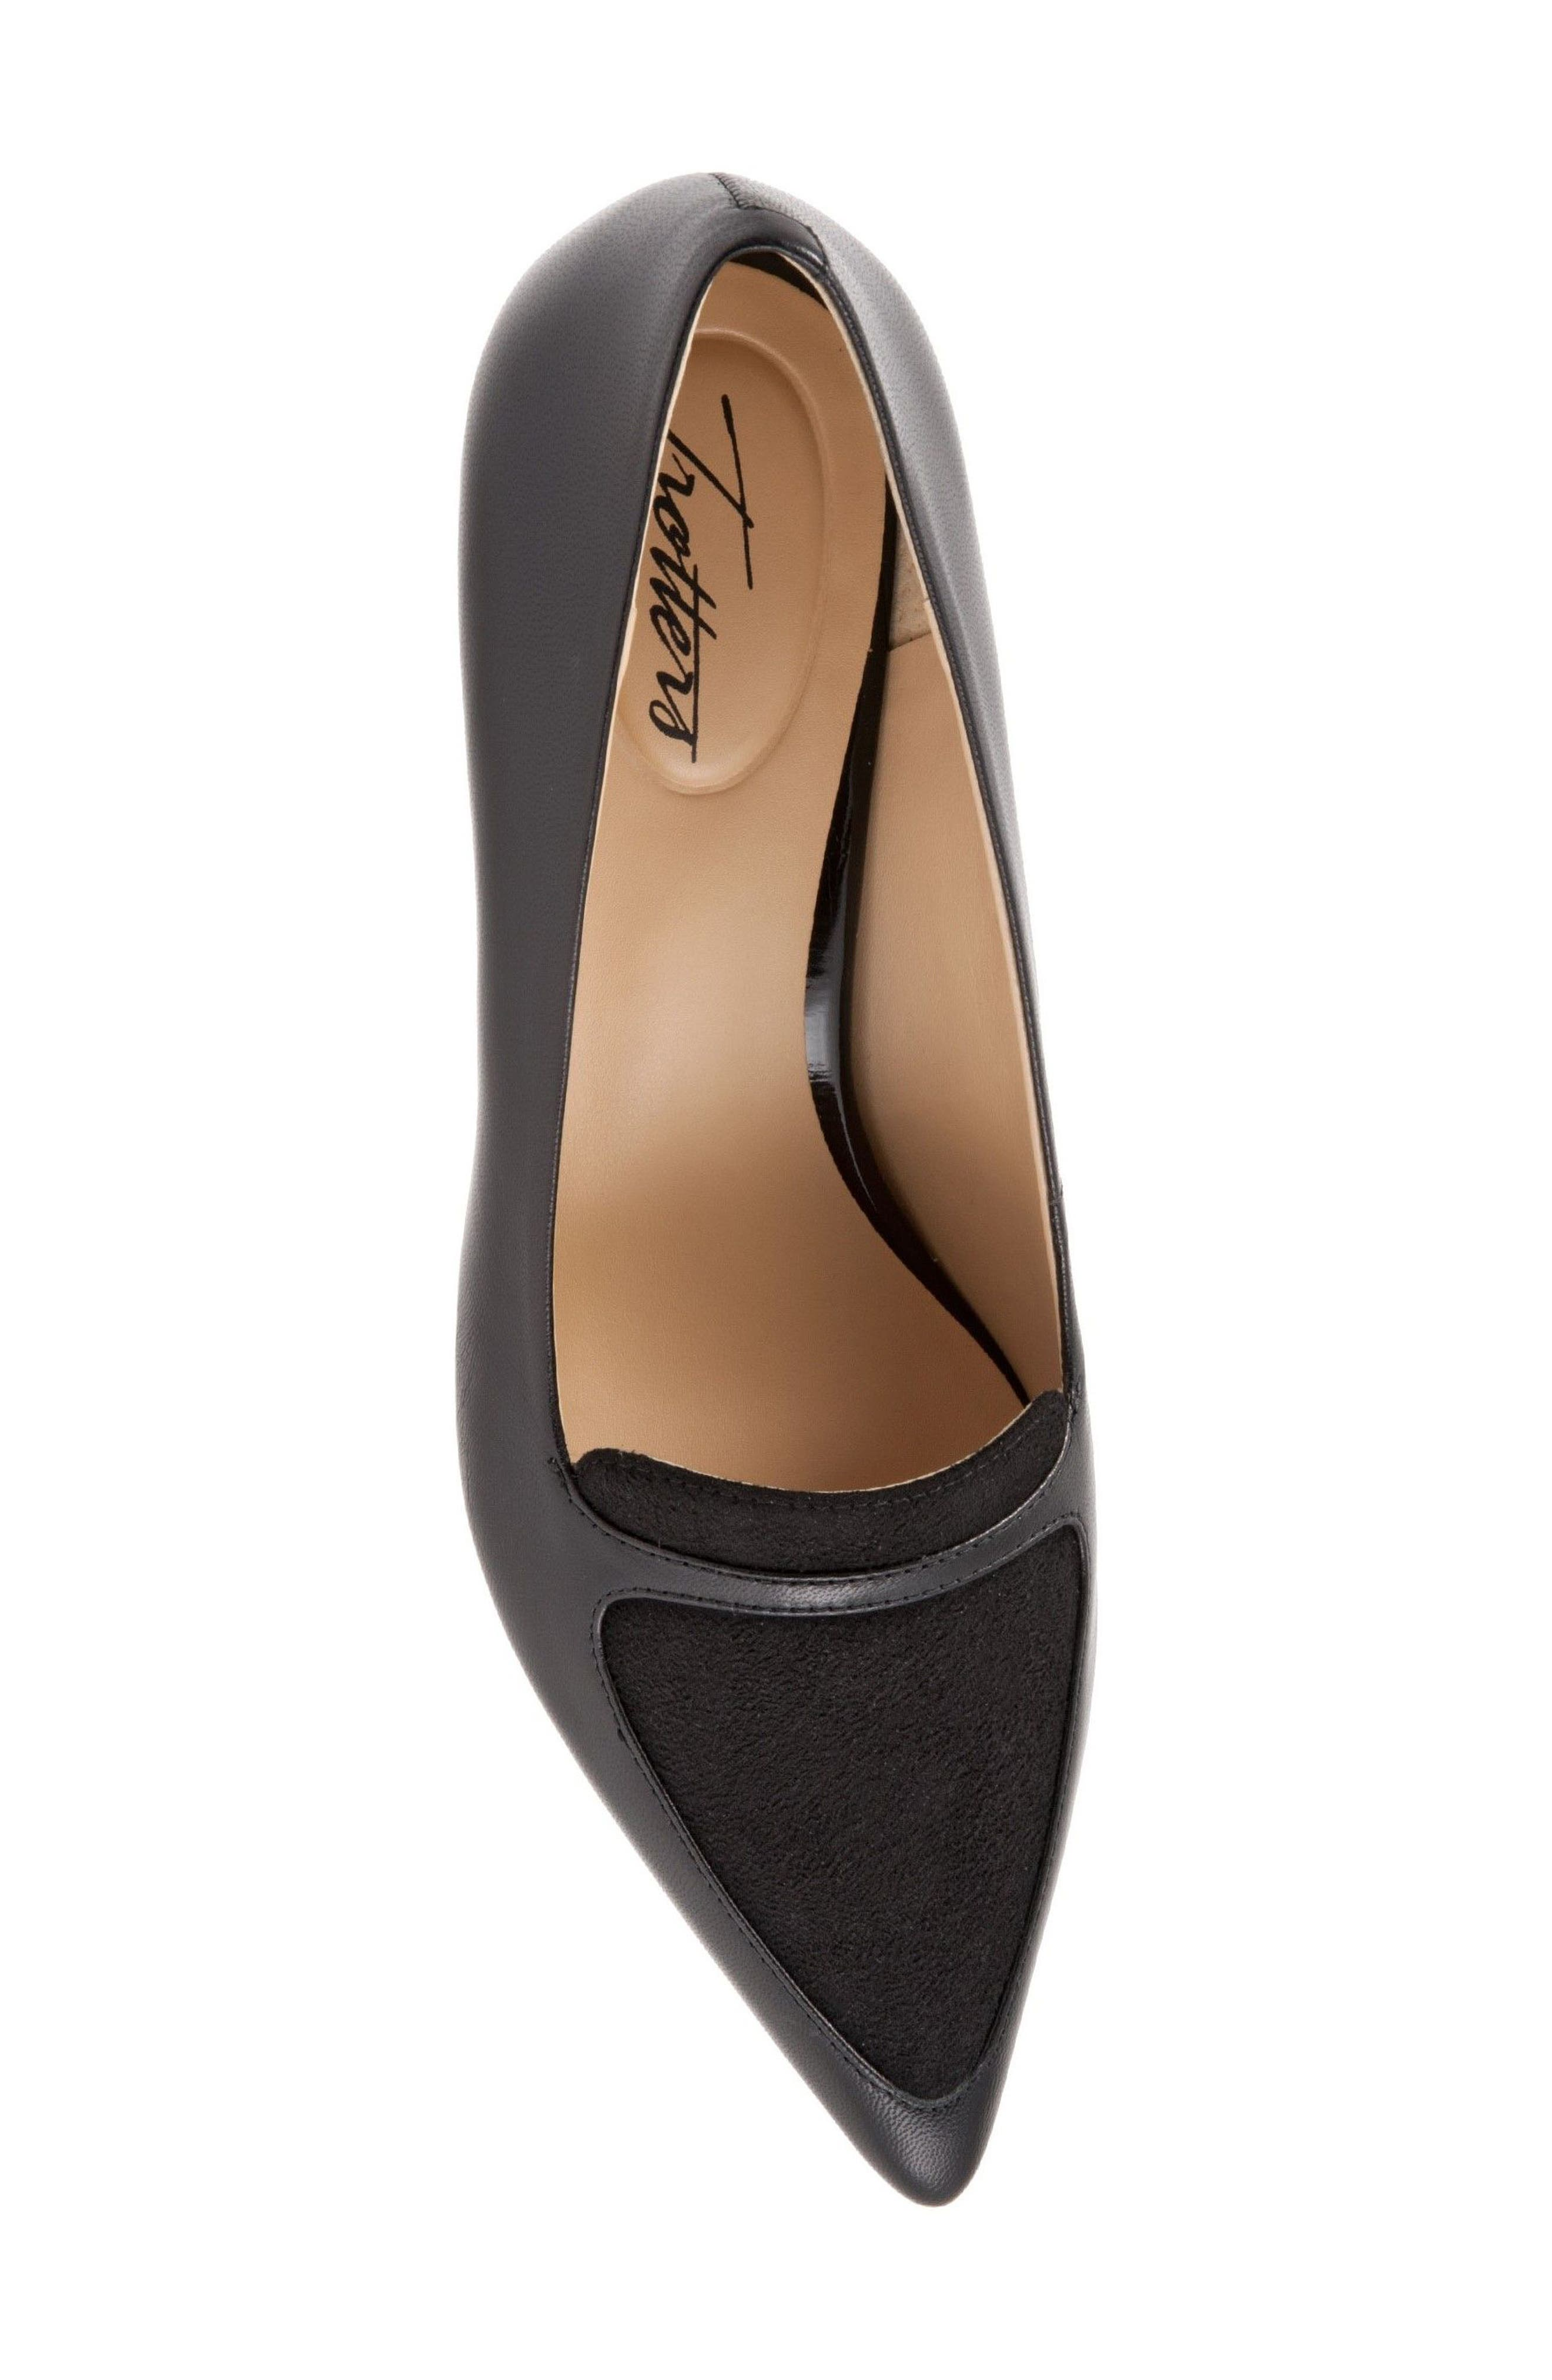 'Piper' Pointy Toe Pump,                             Alternate thumbnail 5, color,                             005